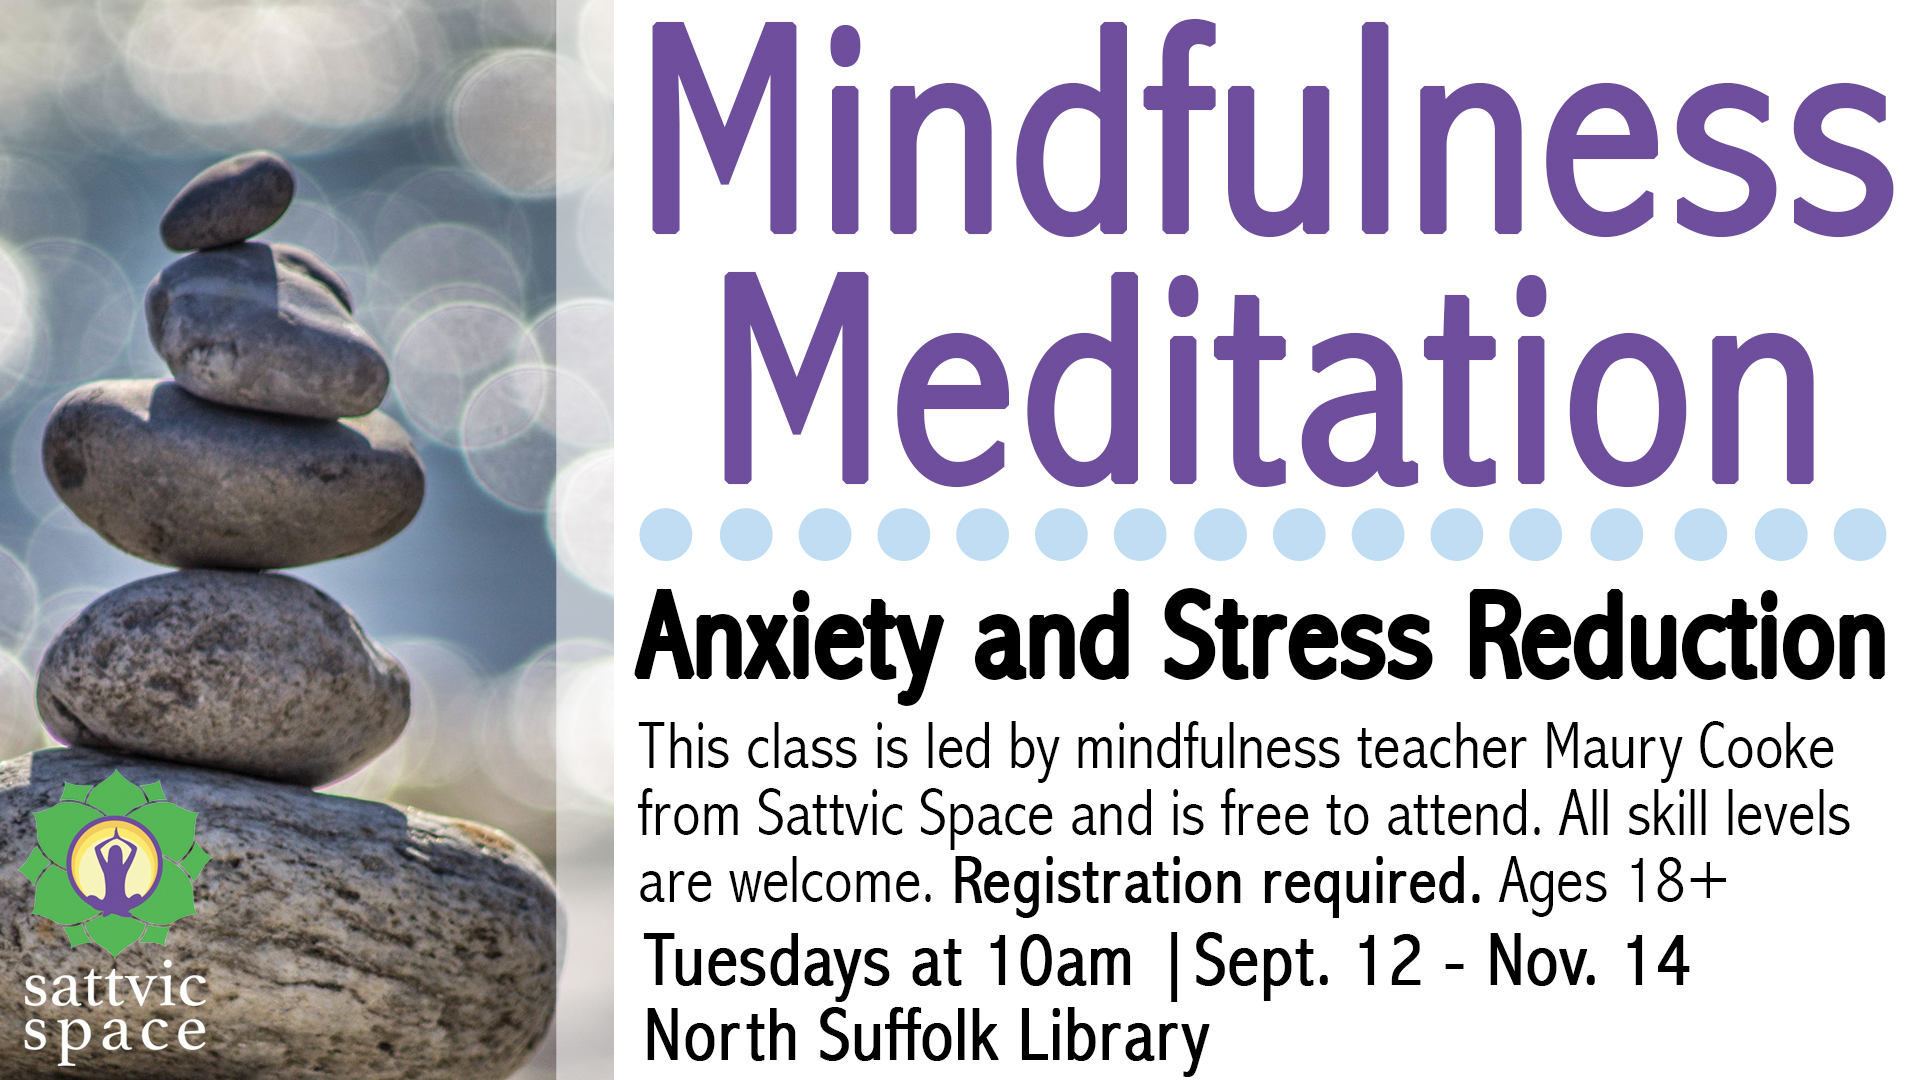 Anxiety and Stress Reduction: Meditation at the Library